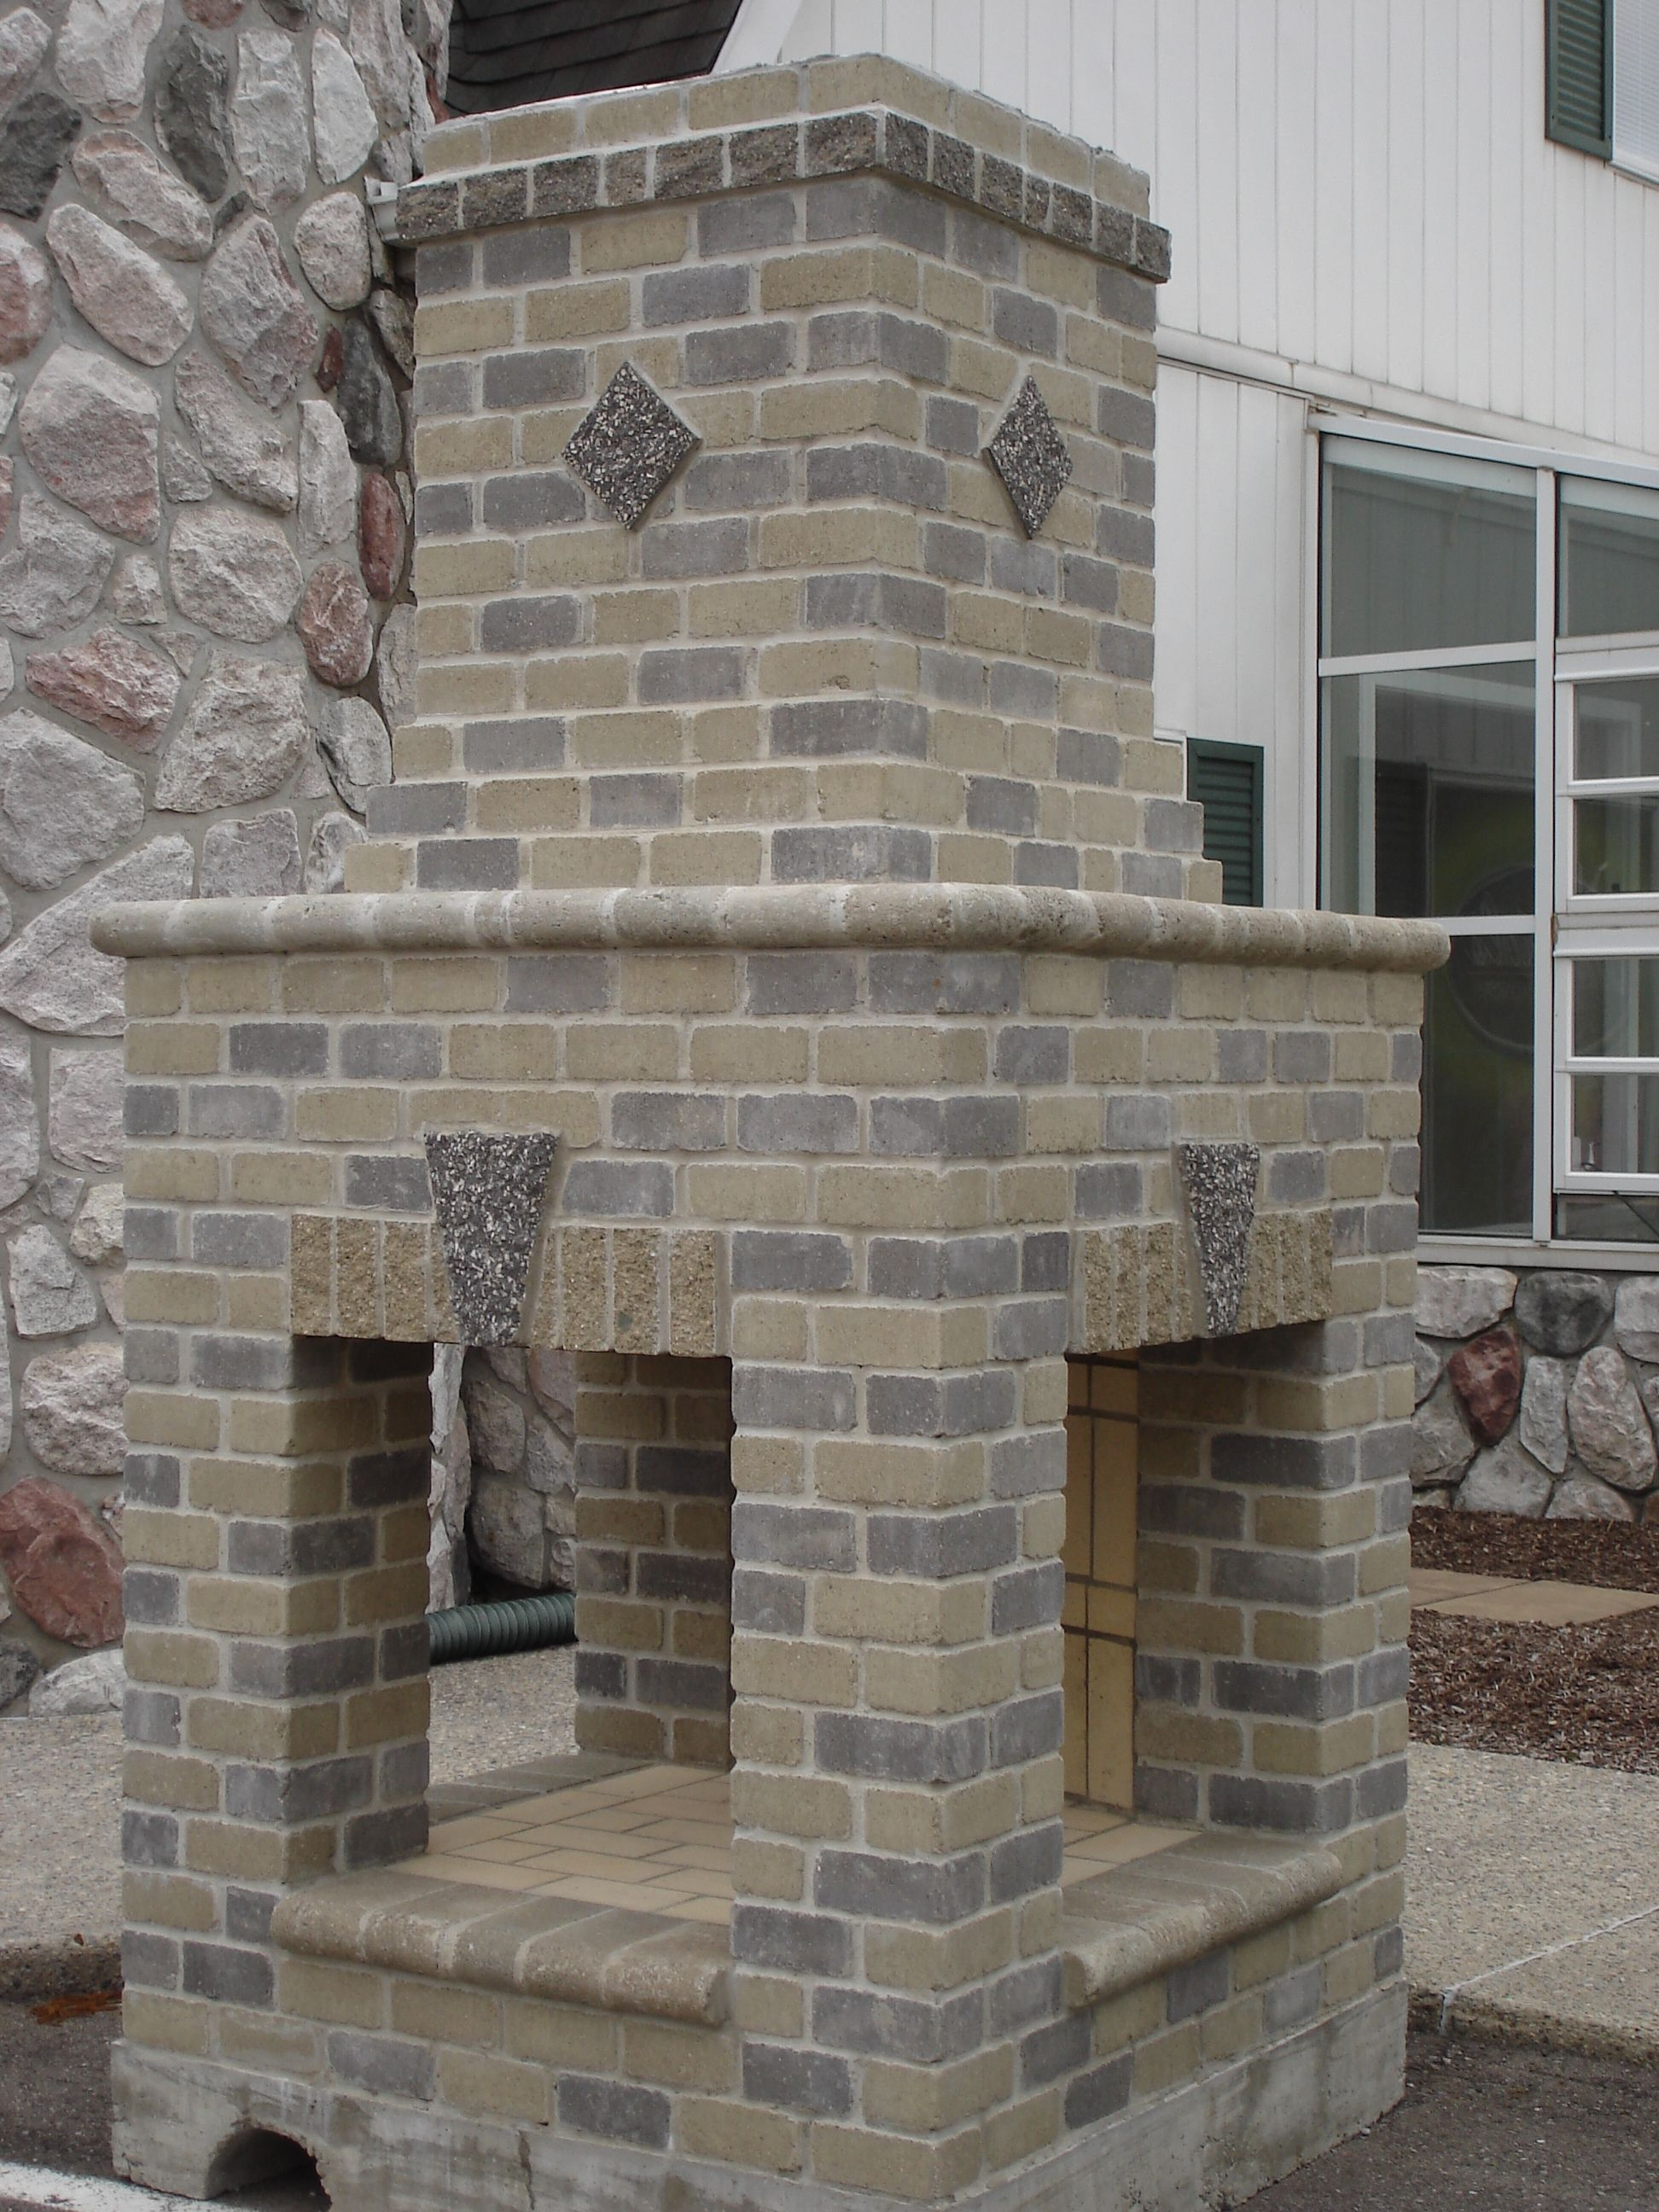 Fire Rock Mortar : Image detail for sided brick and mortar outdoor